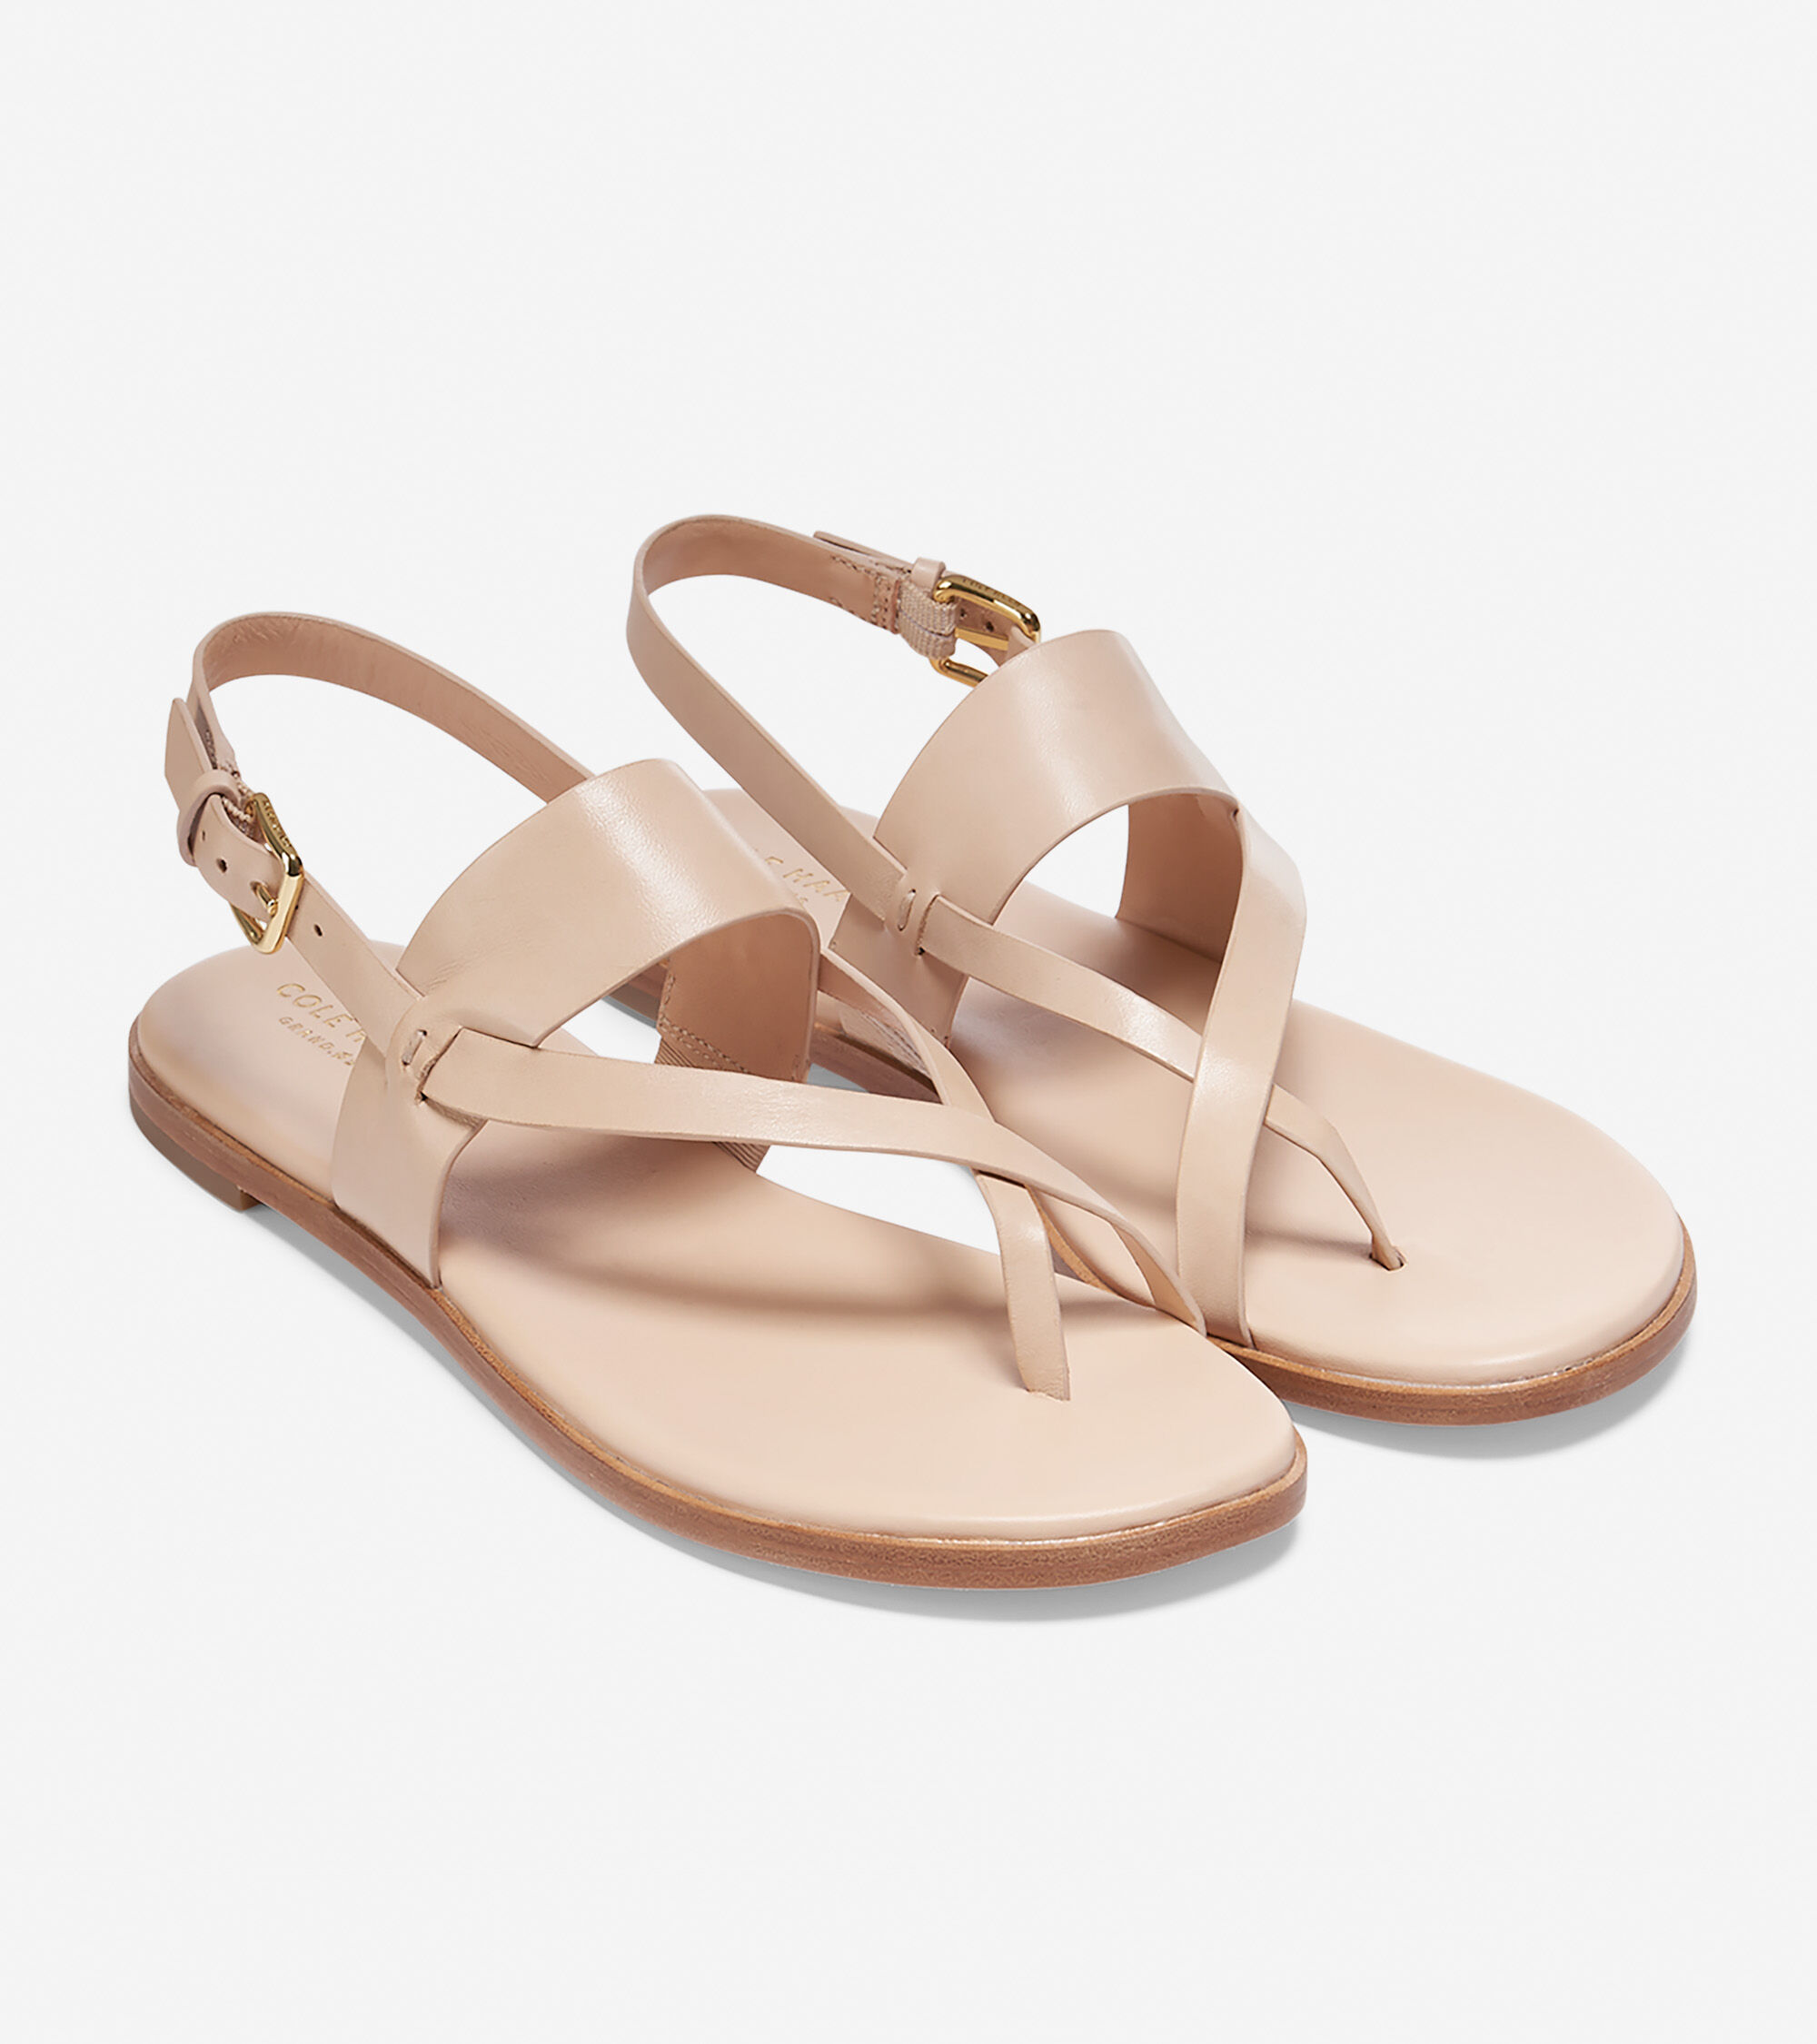 Cole Haan Leather Thong Sandals high quality for sale buy cheap find great dCGELMFHjt